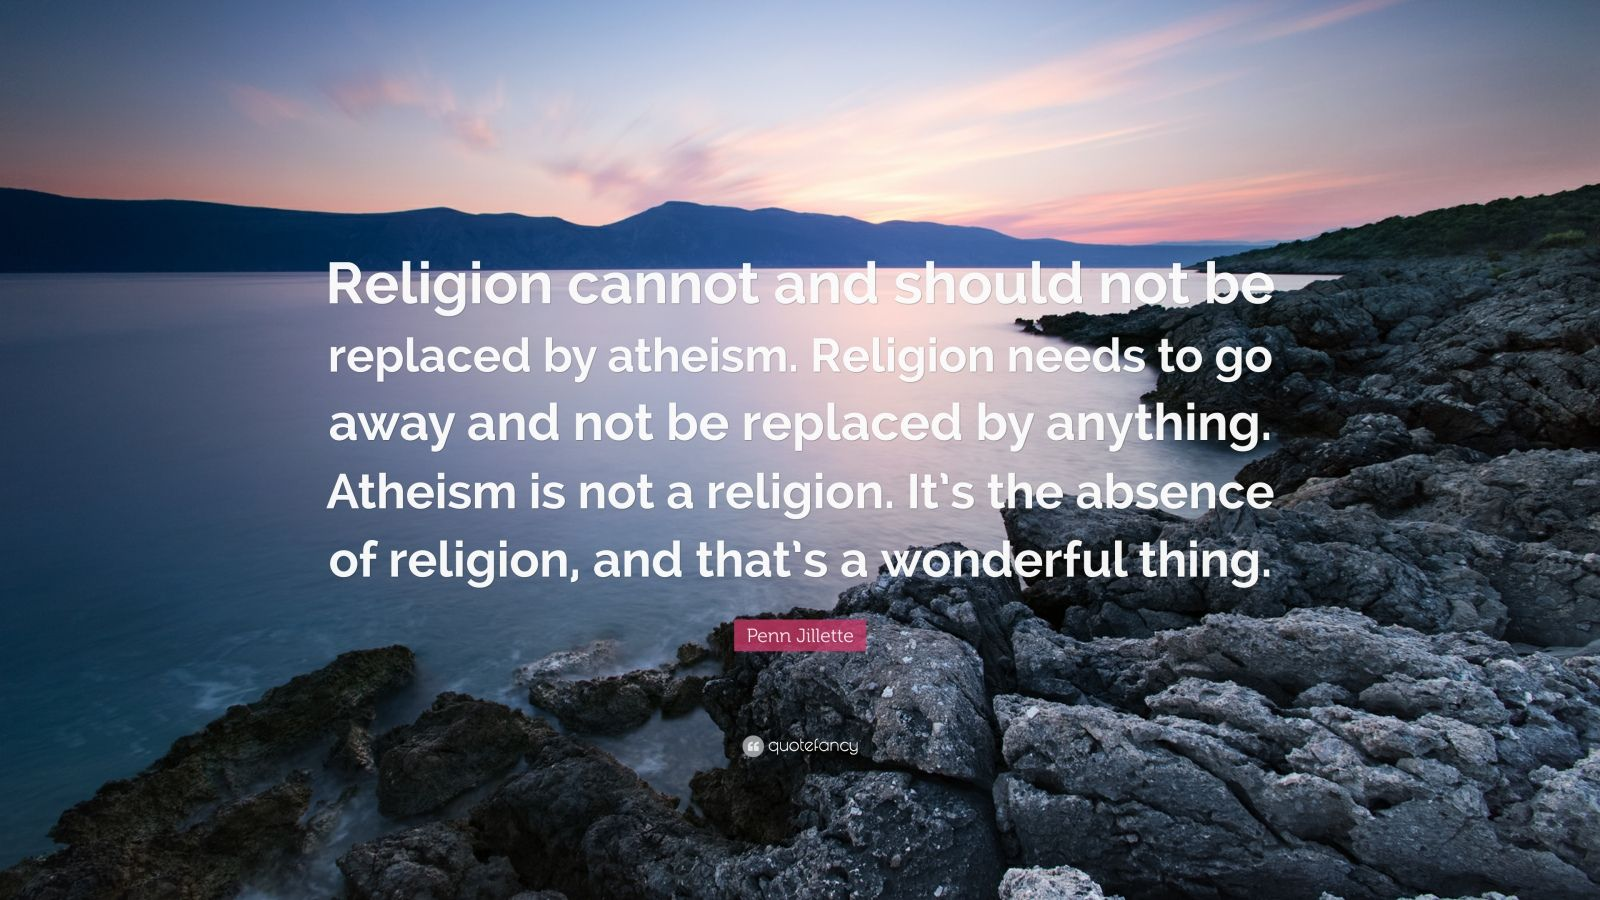 "Penn Jillette Quote: ""Religion cannot and should not be replaced by atheism. Religion needs to go away and not be replaced by anything. Atheism is not a religion. It's the absence of religion, and that's a wonderful thing."""